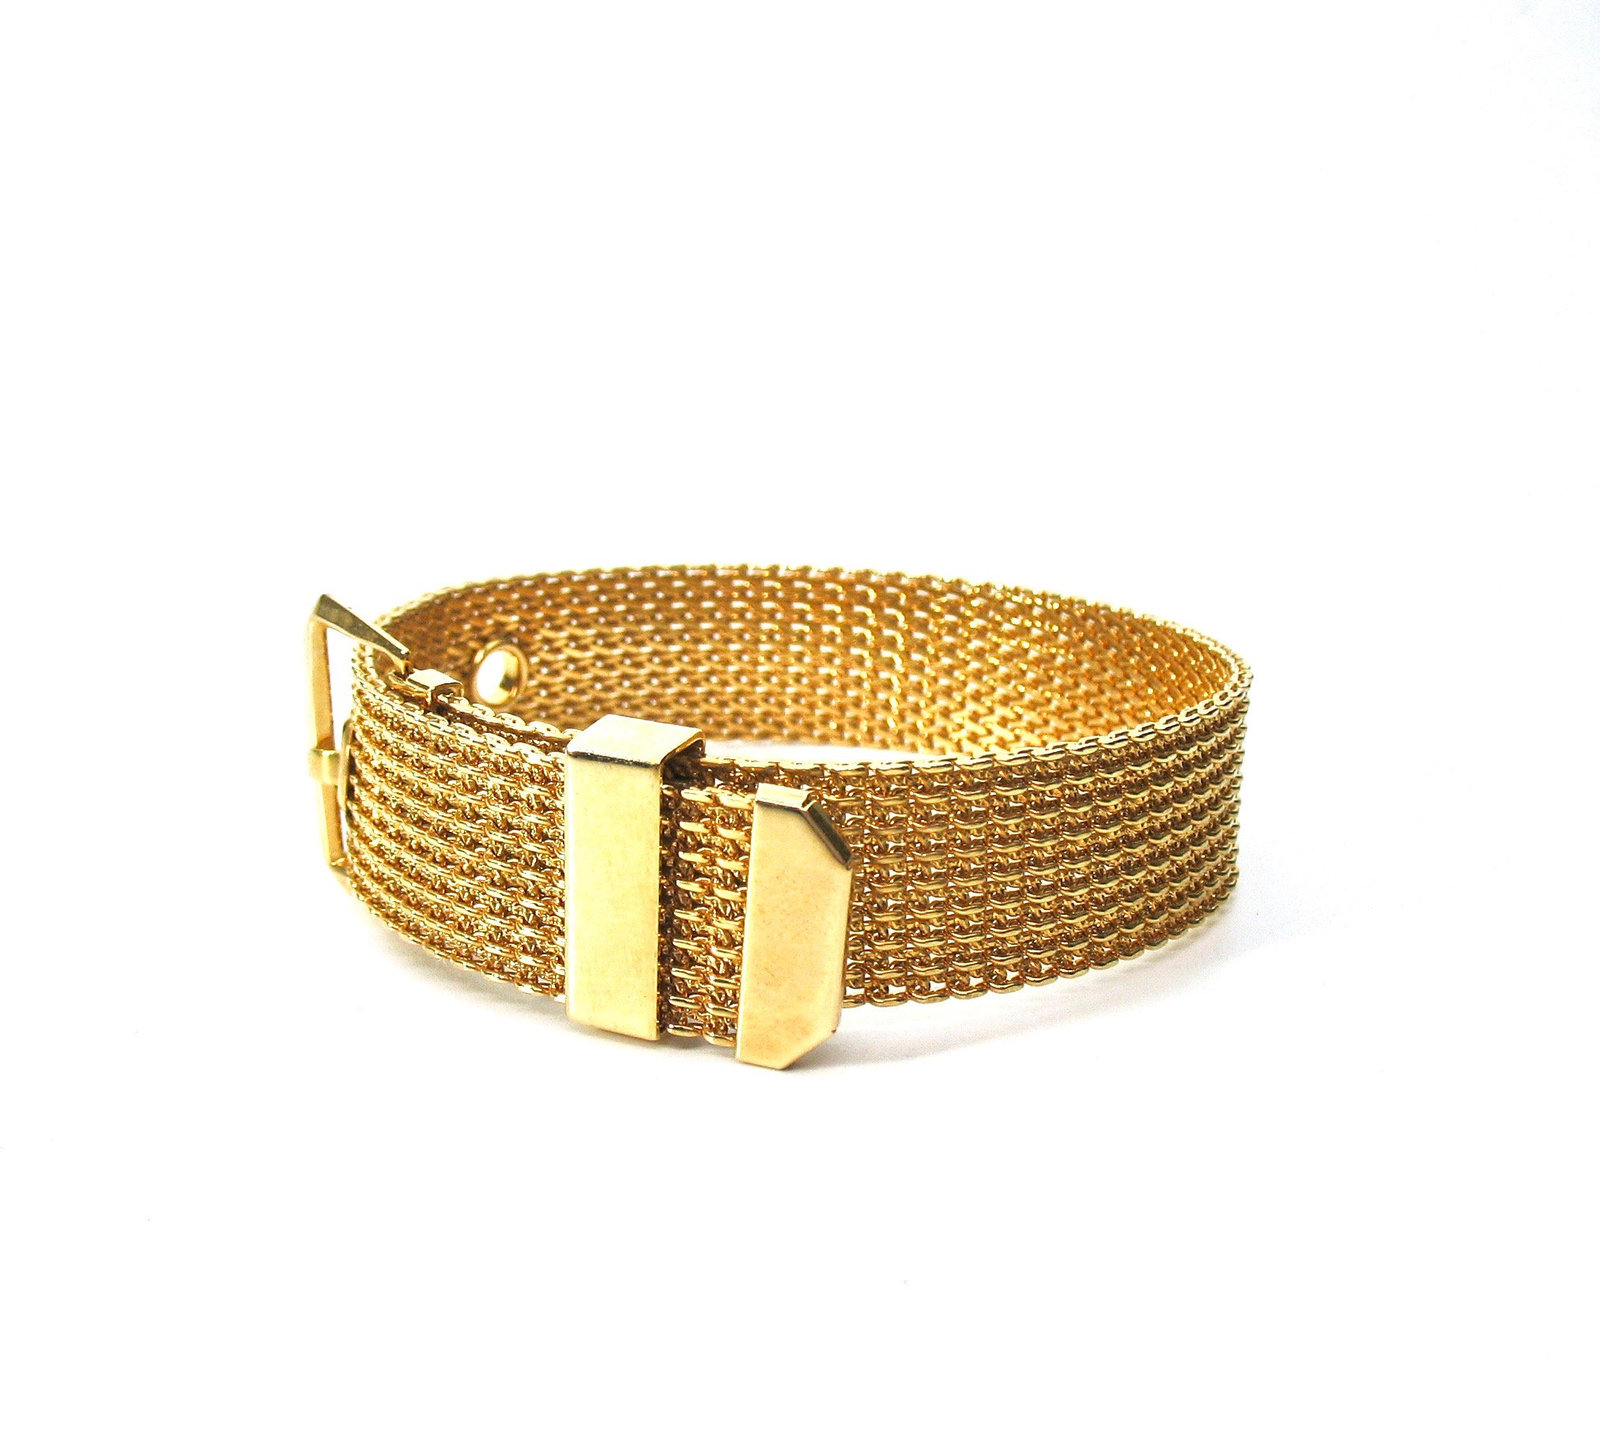 Mesh Buckle Bracelet, Gold Tone, Avon, 1970's, Adjustable, Signed Collectible, D image 6